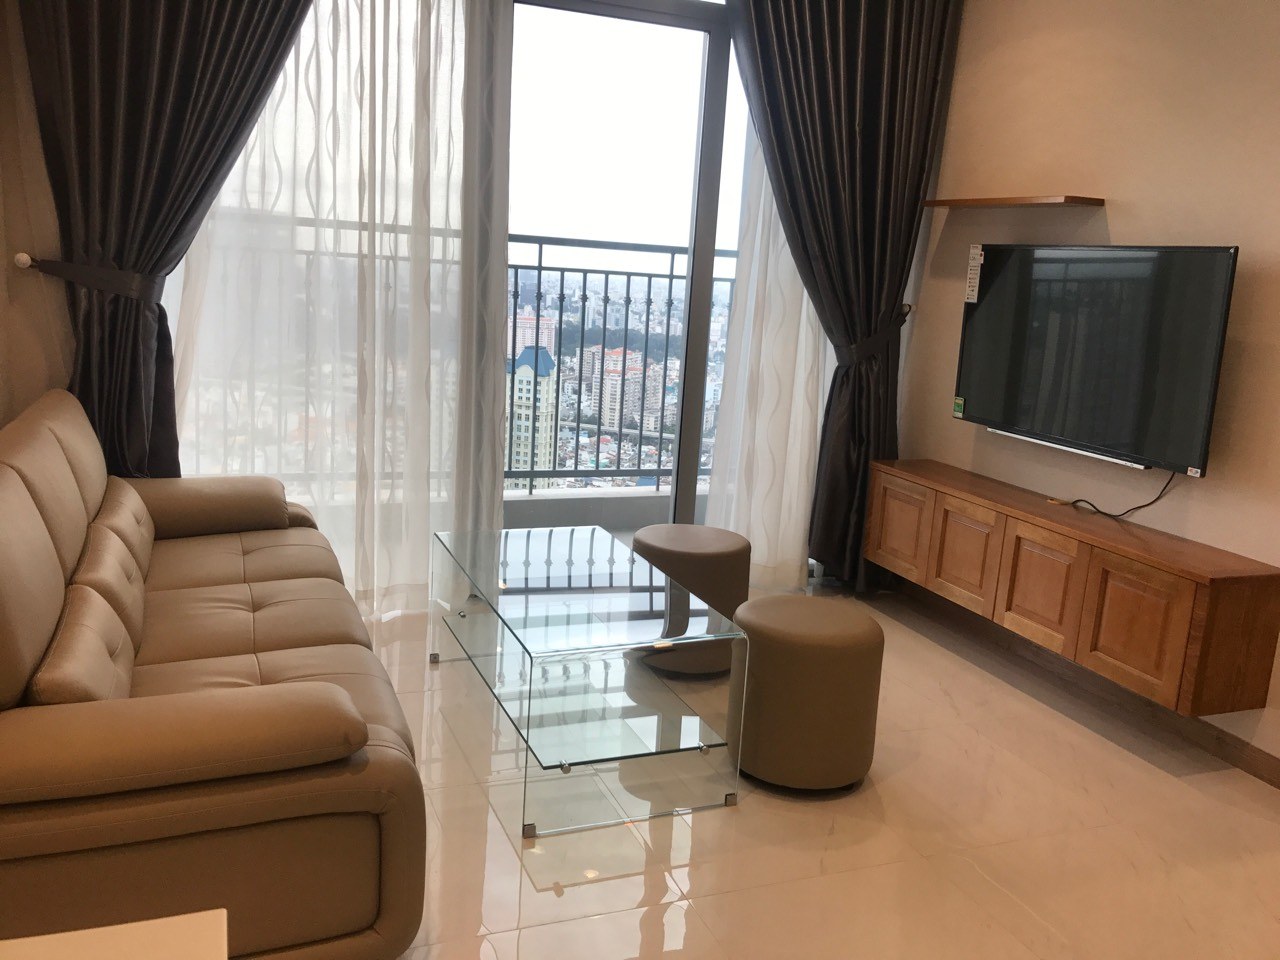 vinhomes central park apartment for rent in binh thanh district hcmc BT105L4410 (8)